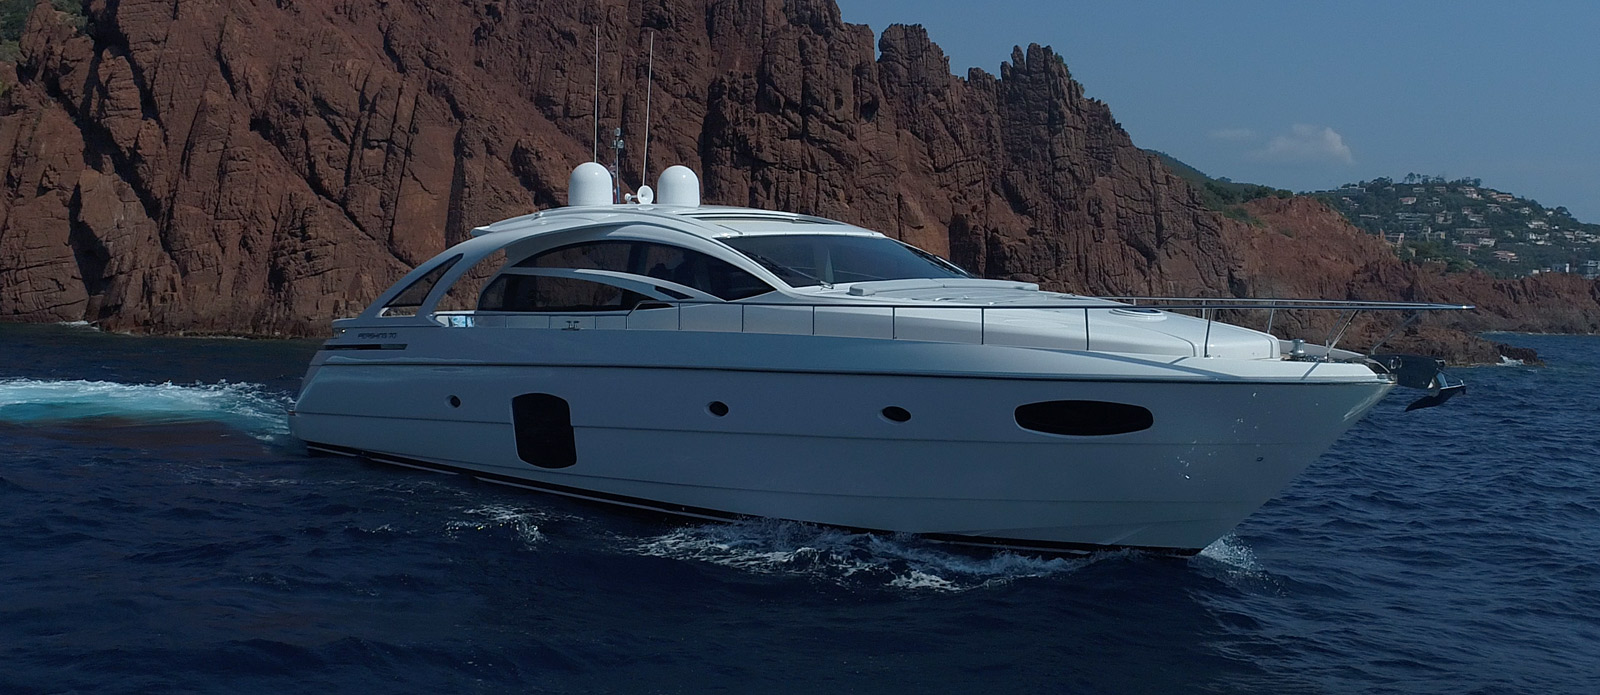 Pershing 70 - Ritmo De Vida - Bow-On